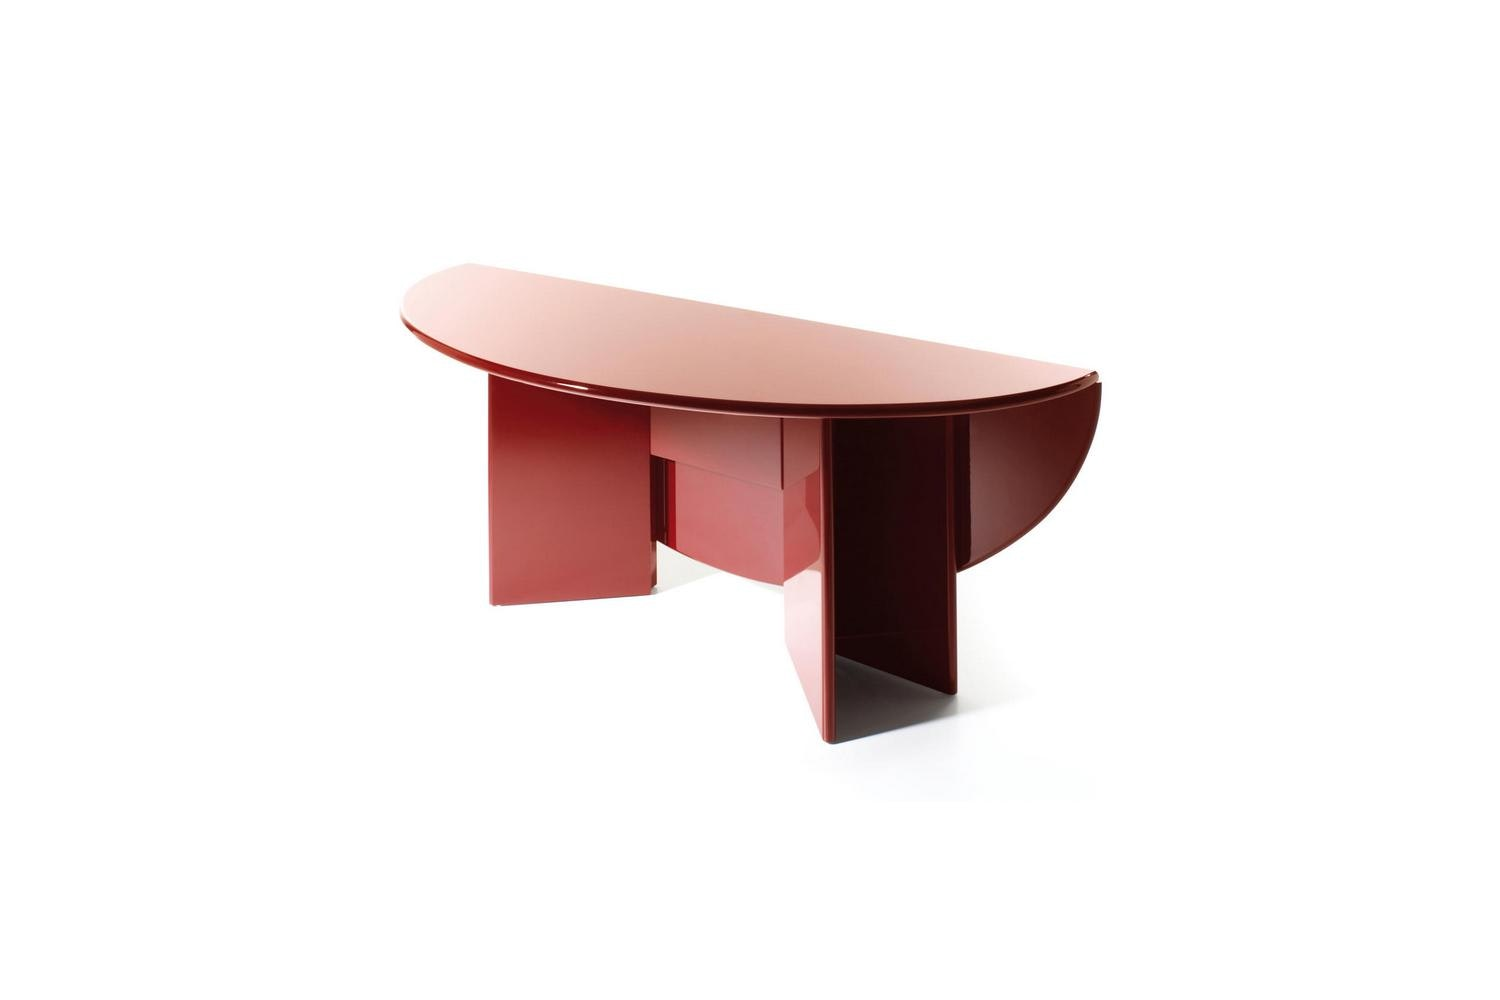 W53 Antella Table by Kazuhide Takahama for Cassina